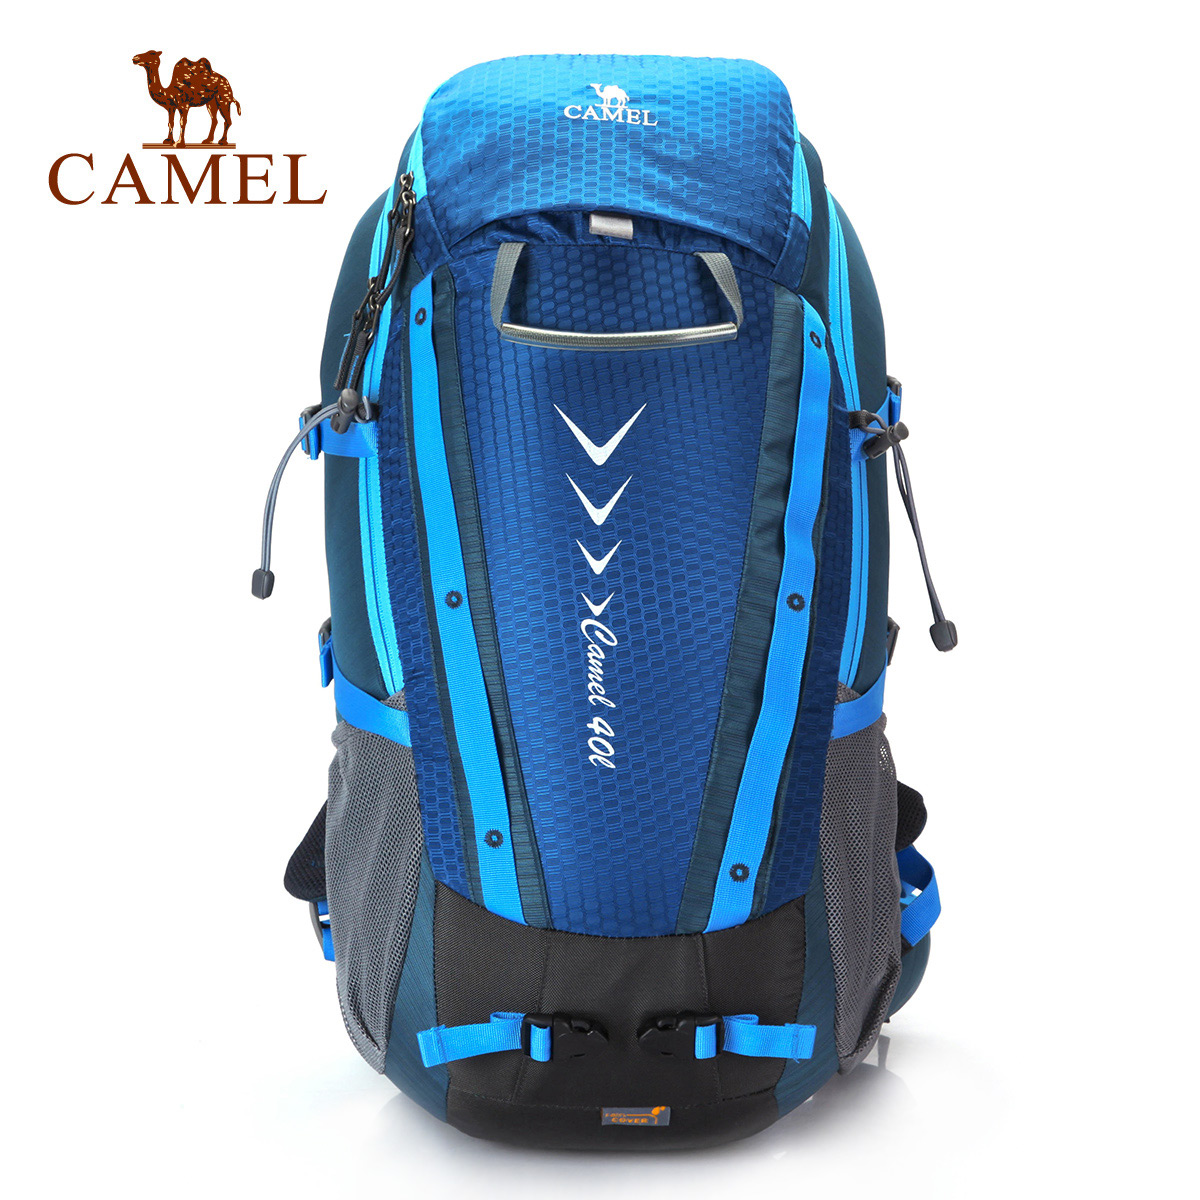 Camel camel outdoor mountaineering bags 40l backpack outdoor travel backpack mountaineering bag large capacity